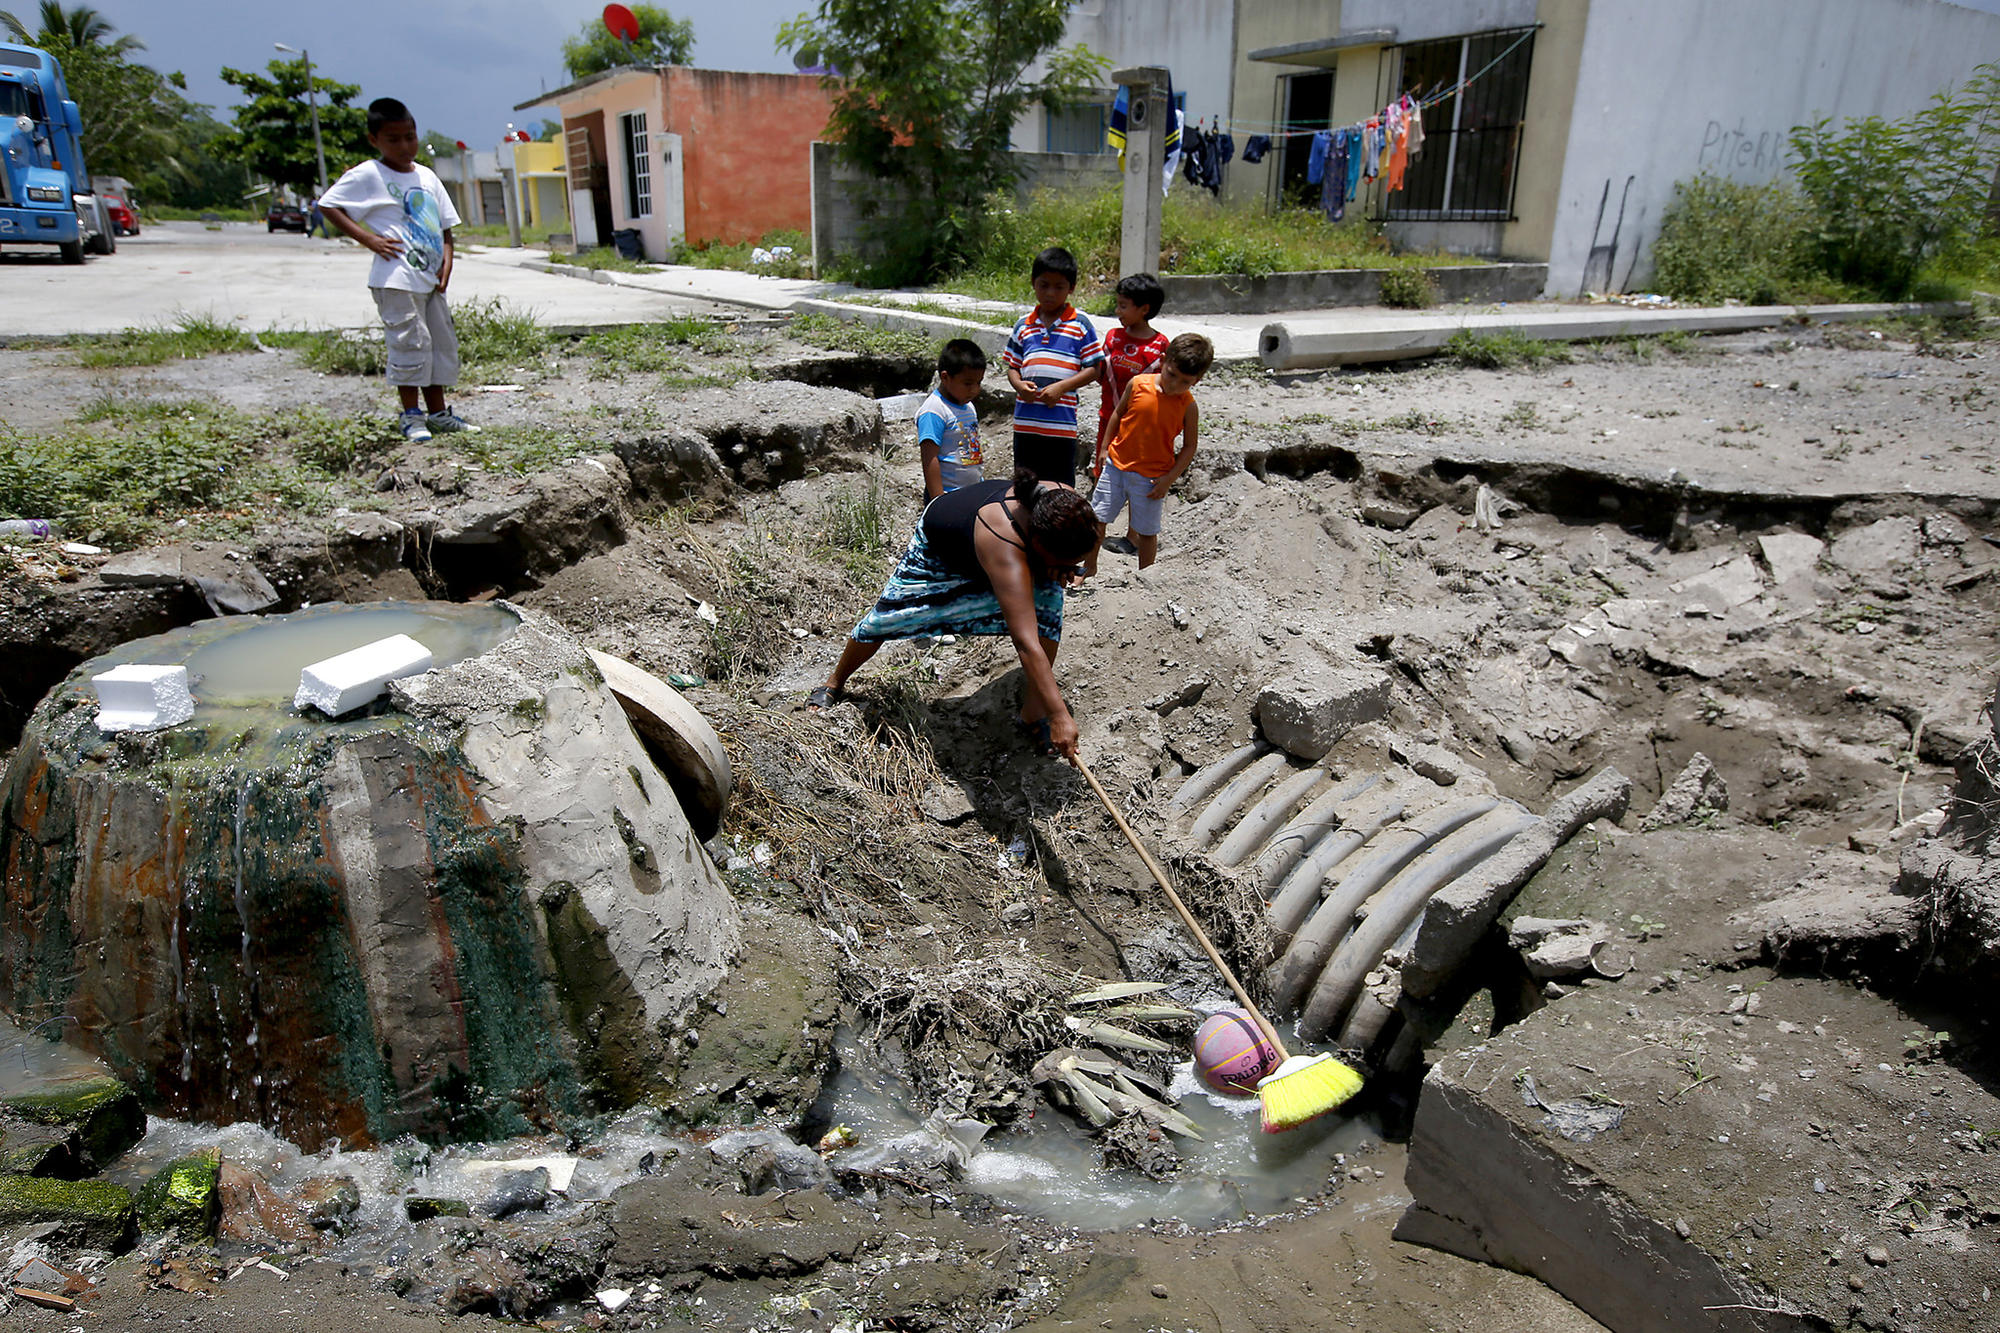 Adela Blanco uses a broom to retrieve a basketball from an open pit of raw sewage near her home in Colinas de Santa Fe in Veracruz, Mexico.